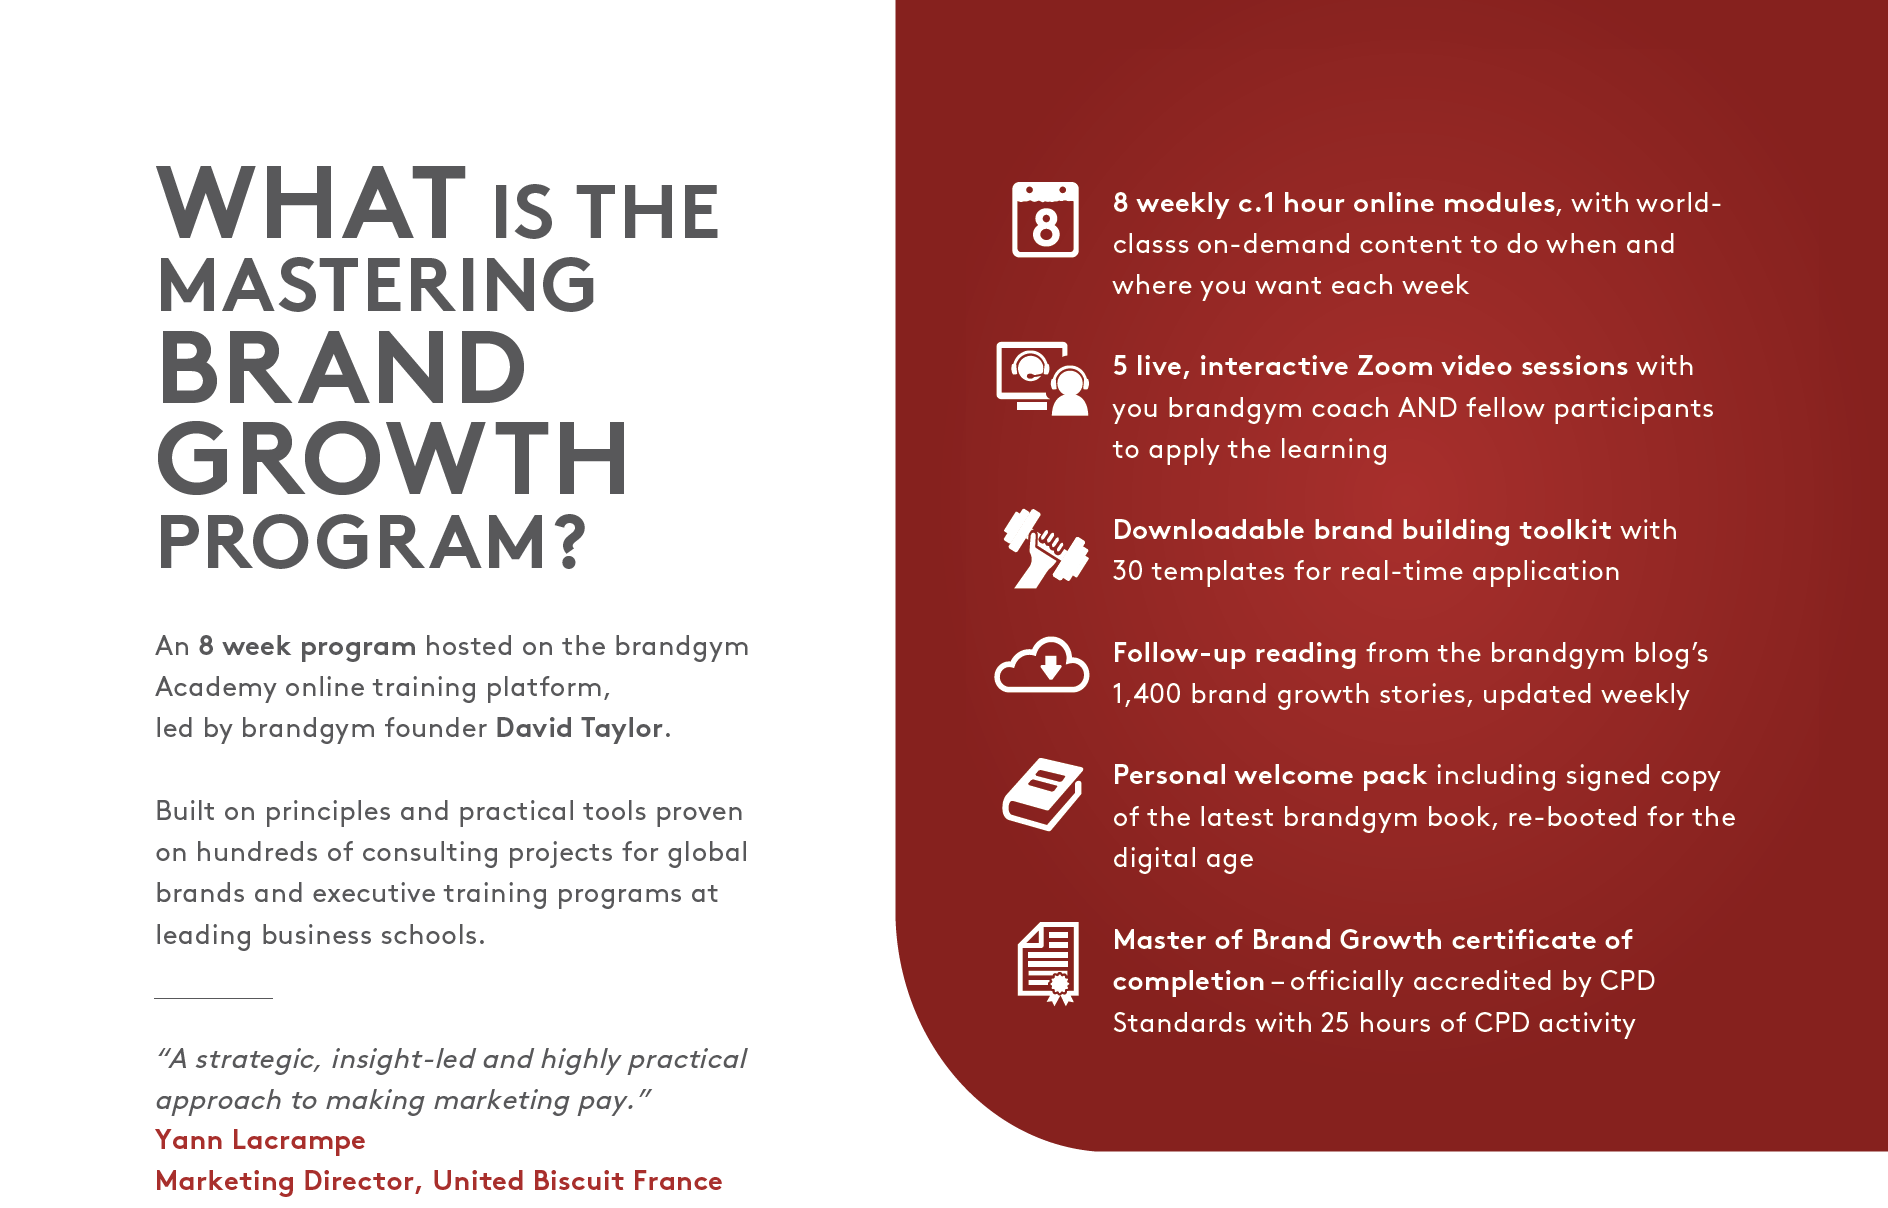 What the MBG program involves: blend of world-class online content and live Zoom sessions to apply the learning.